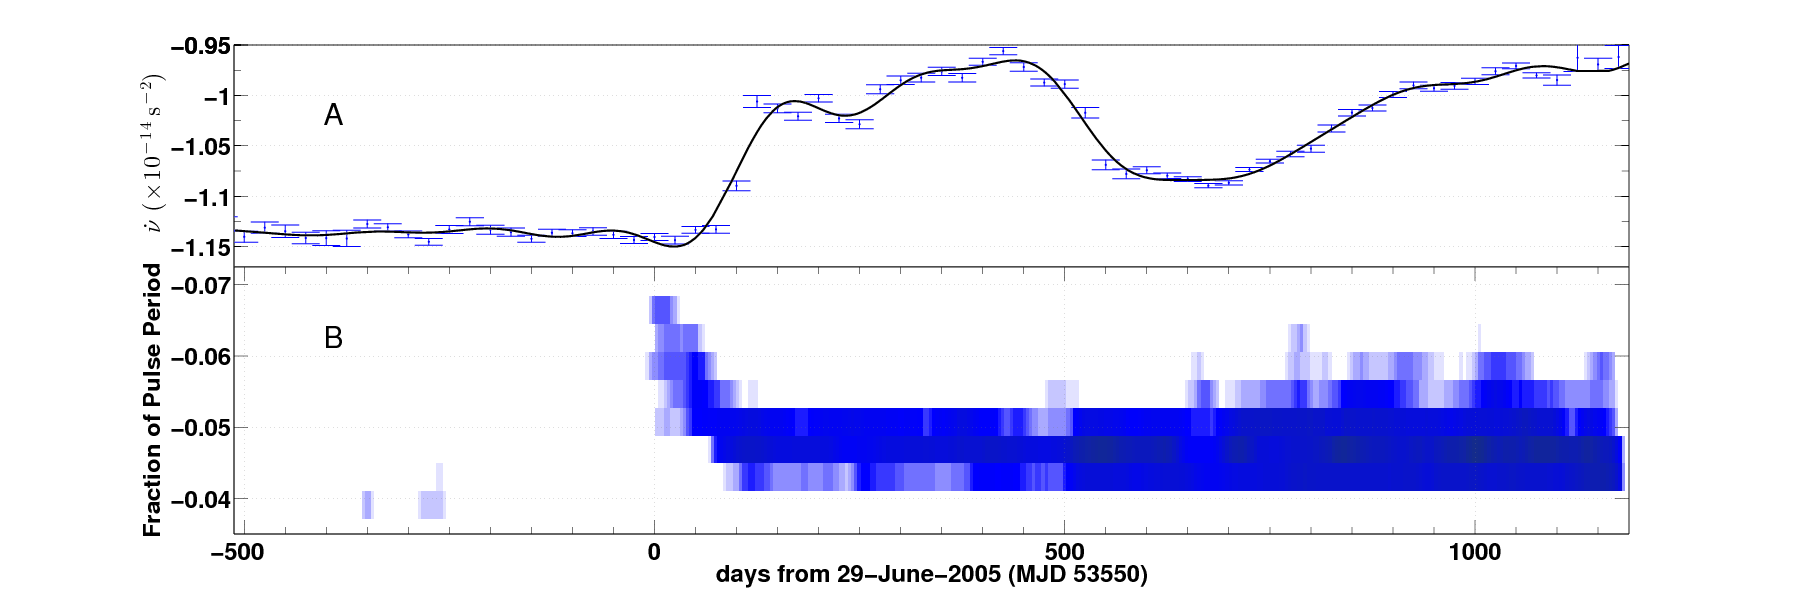 Figure 1- Top: The spin-down rate as a function of time during a ~1,700 day observation window. Bottom: The fraction of the pulse period over the same time- the fact that this changes shows the drift feature.